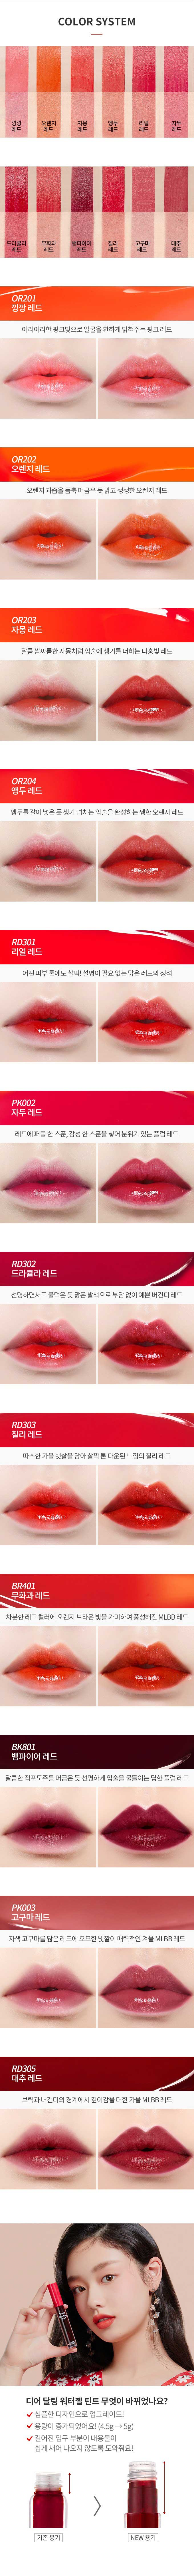 dear-darling-water-gel-tint-korean-cosmetics12.jpg